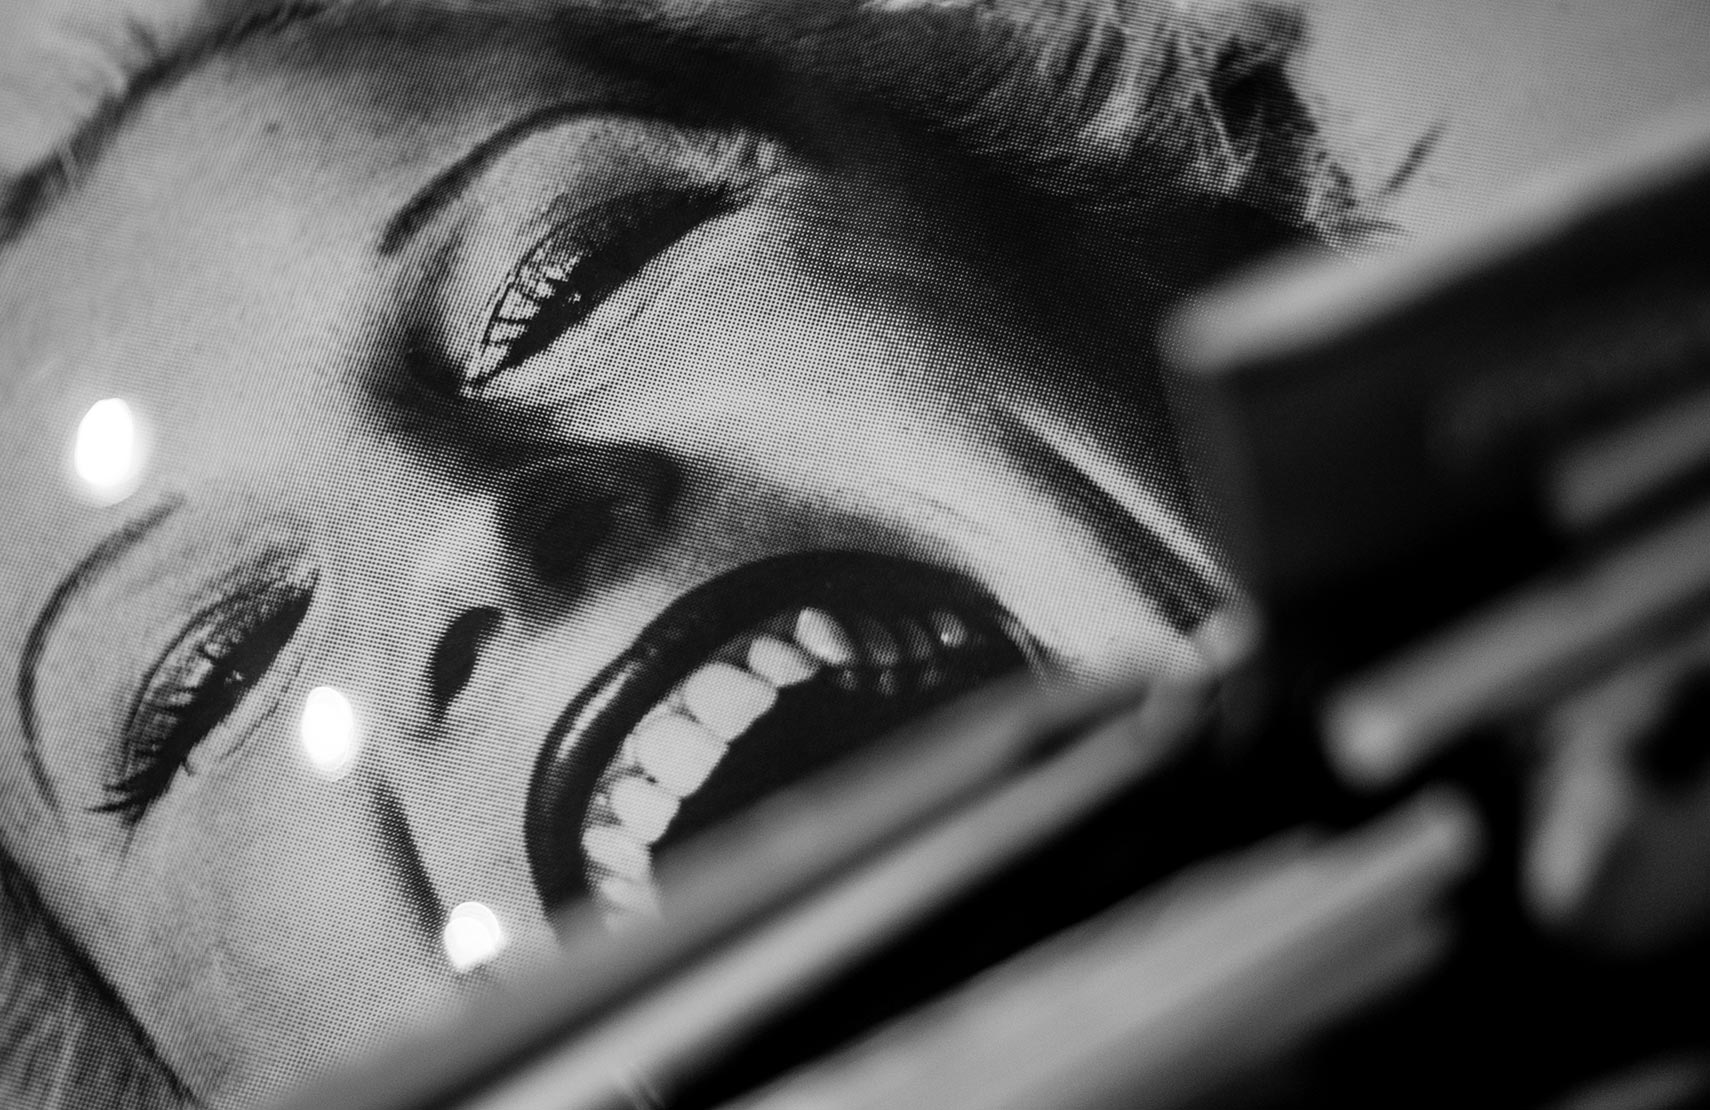 A poster of woman smiling up-close in black and white